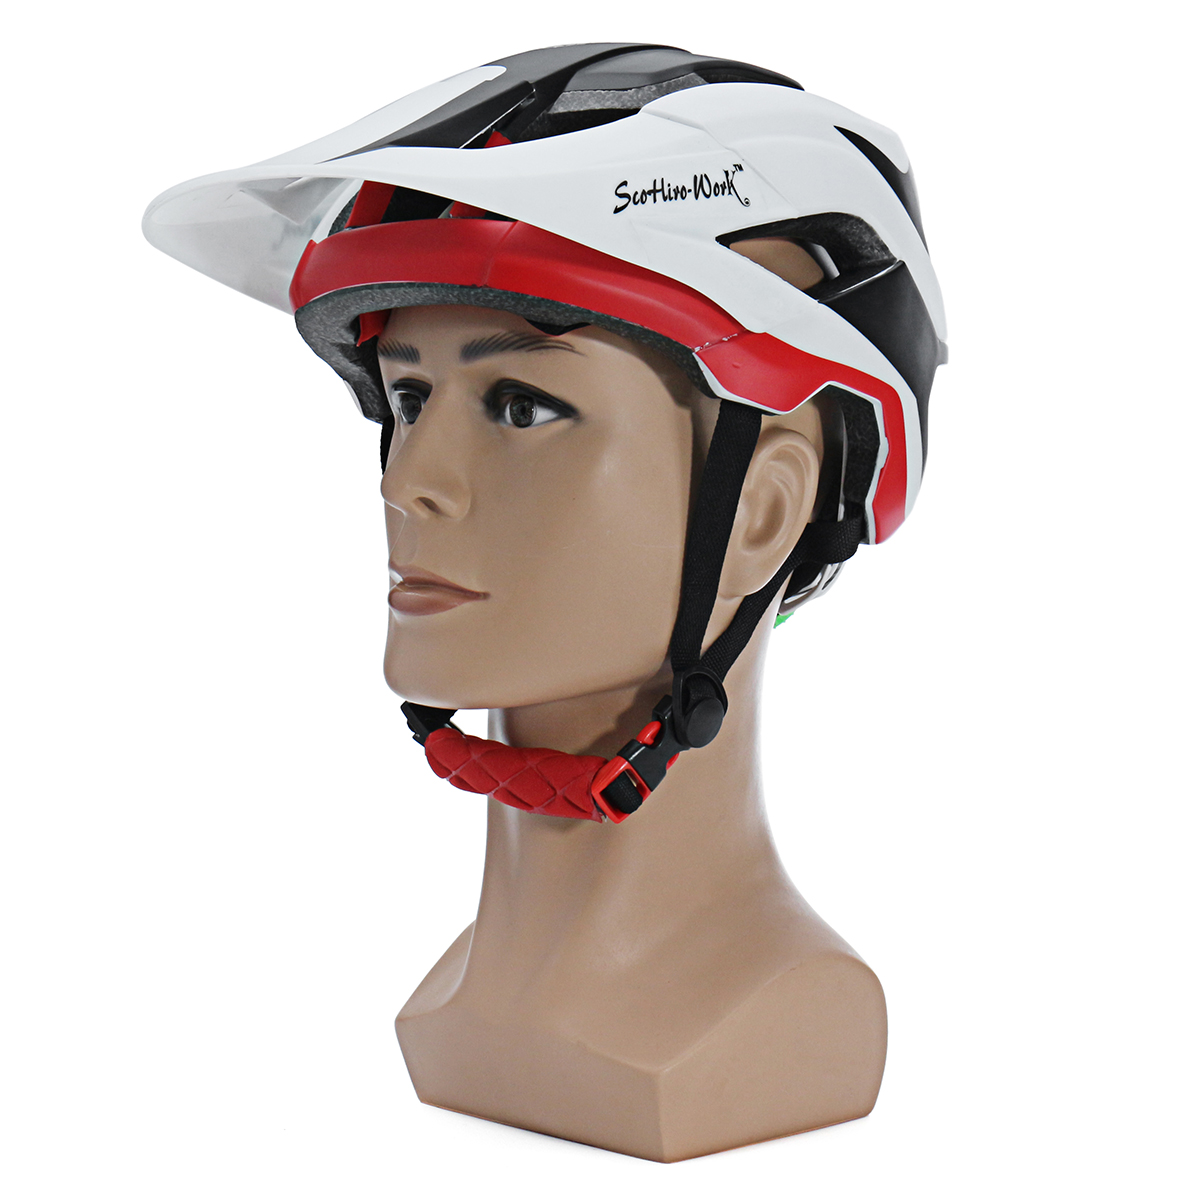 SCOHIRO-WORK Water Label Version Mountain Bike Helmet Ultralight Cycling Sport Safety Helmet